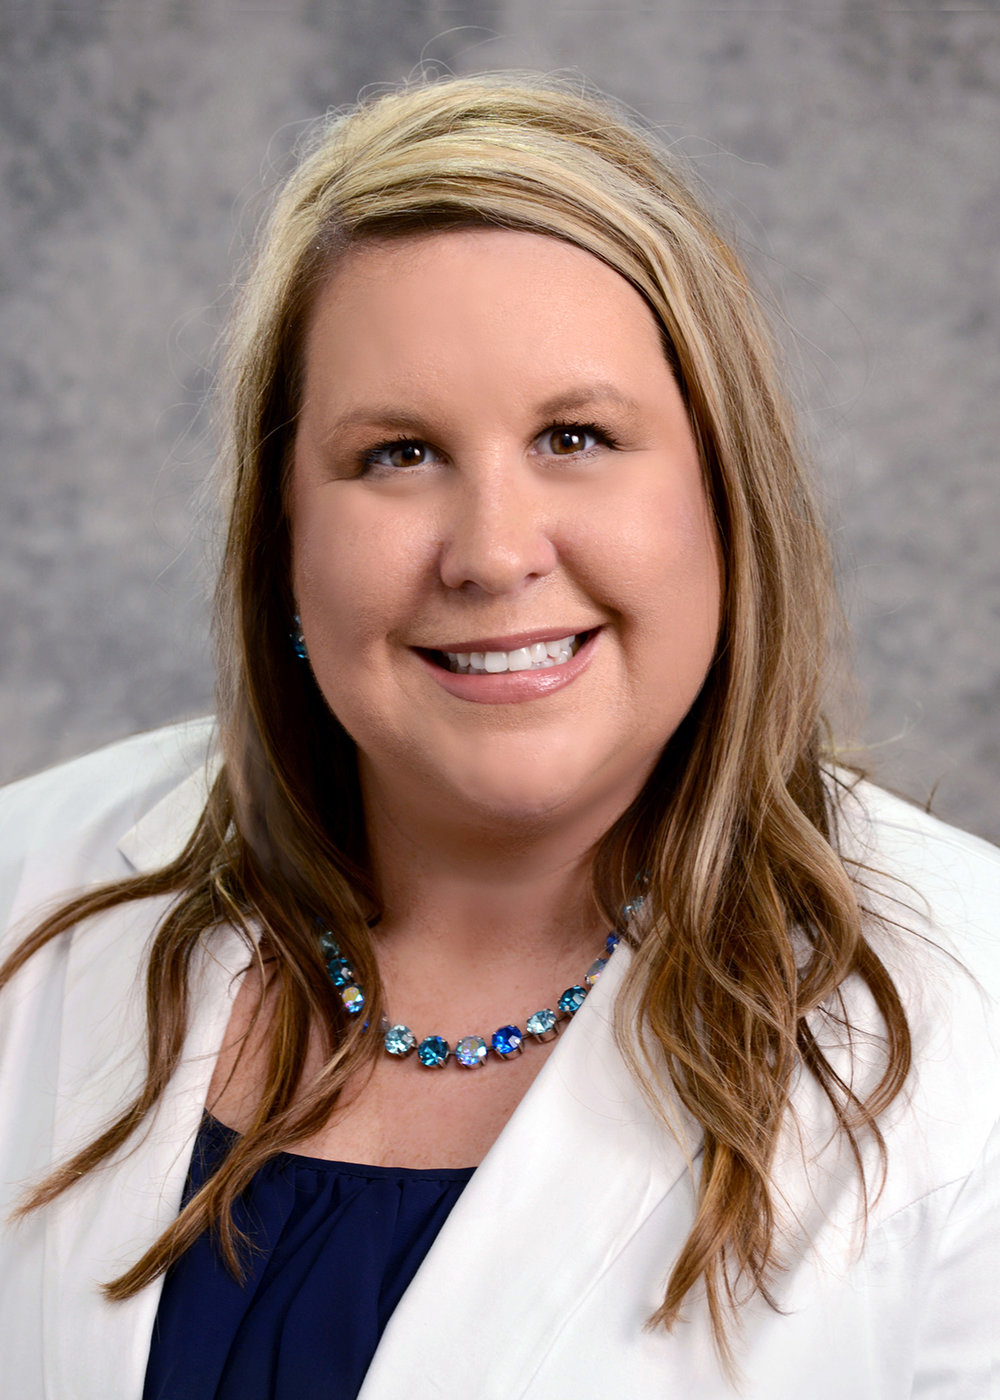 Chrissy Peters Co-Director of Elections (573) 751-2301  chrissy.peters@sos.mo.gov   Website